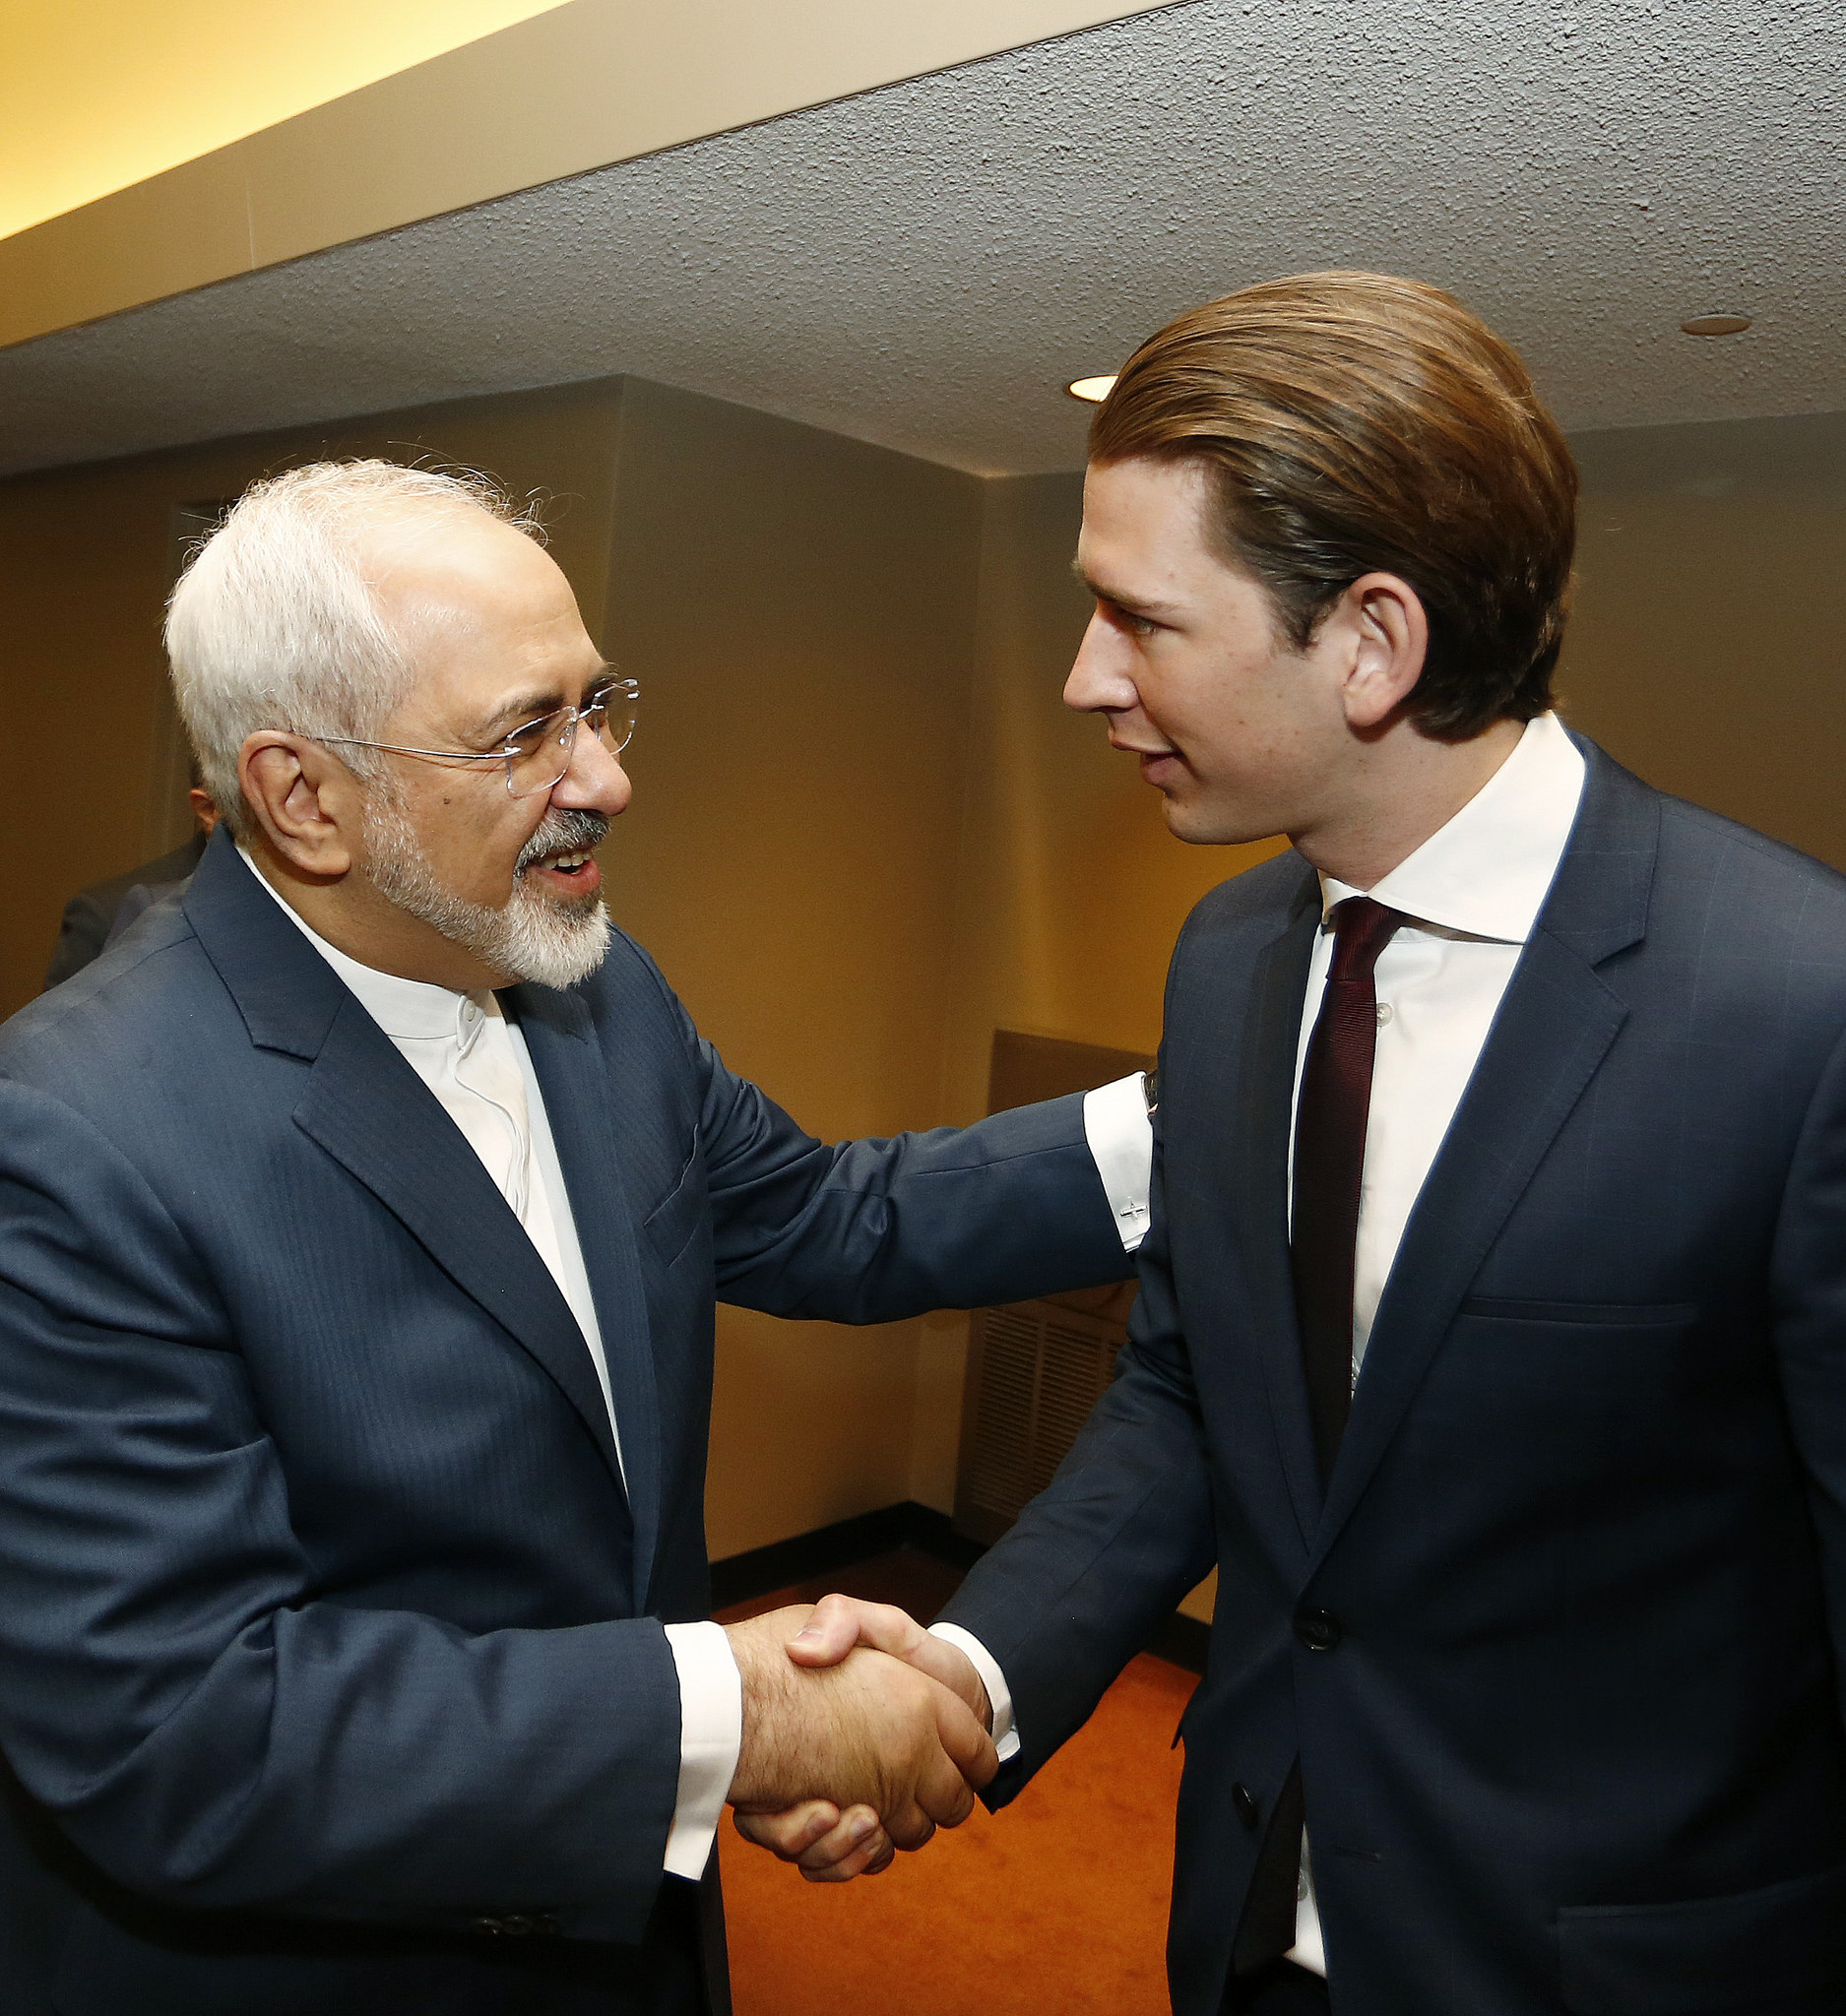 Foreign Minister Sebastian Kurz meets Mohammad Javad Zarif, the foreign minister of Iran, atthe Review  Conference of the Non-Proliferation Treaty (NPT) at the United Nations. Photo: Dragan Tatic.